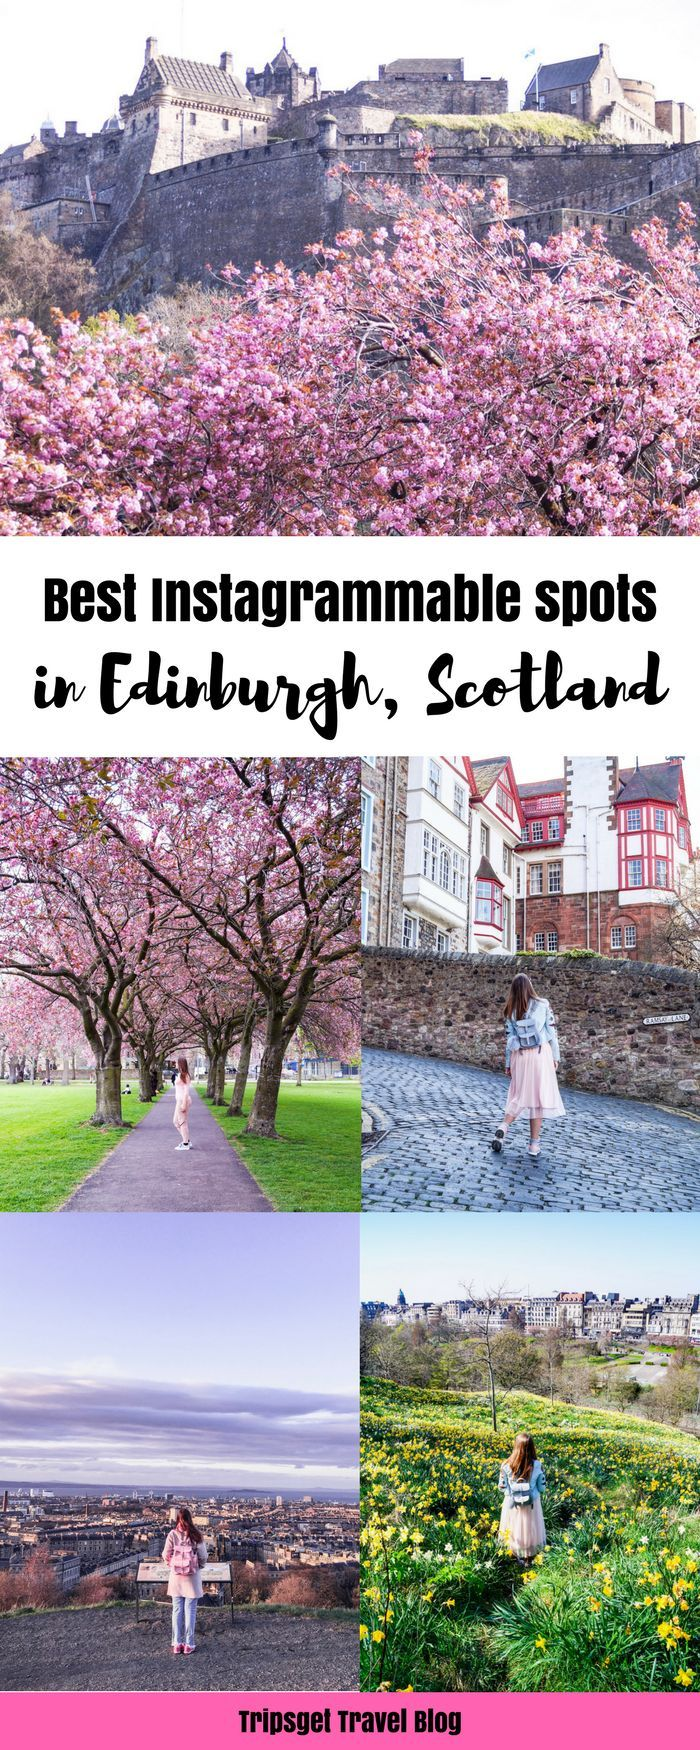 Looking for the best Instagrammable spots in Edinburgh, Scotland? You're in the right place, keep reading! Royal Mile, Calton Hill, Arthur's Seat, Edinburgh cute cafes, Edinburgh brunch spots, Instagrammable places in Scotland, UK, London, Cherry Blossom, Edinburgh University